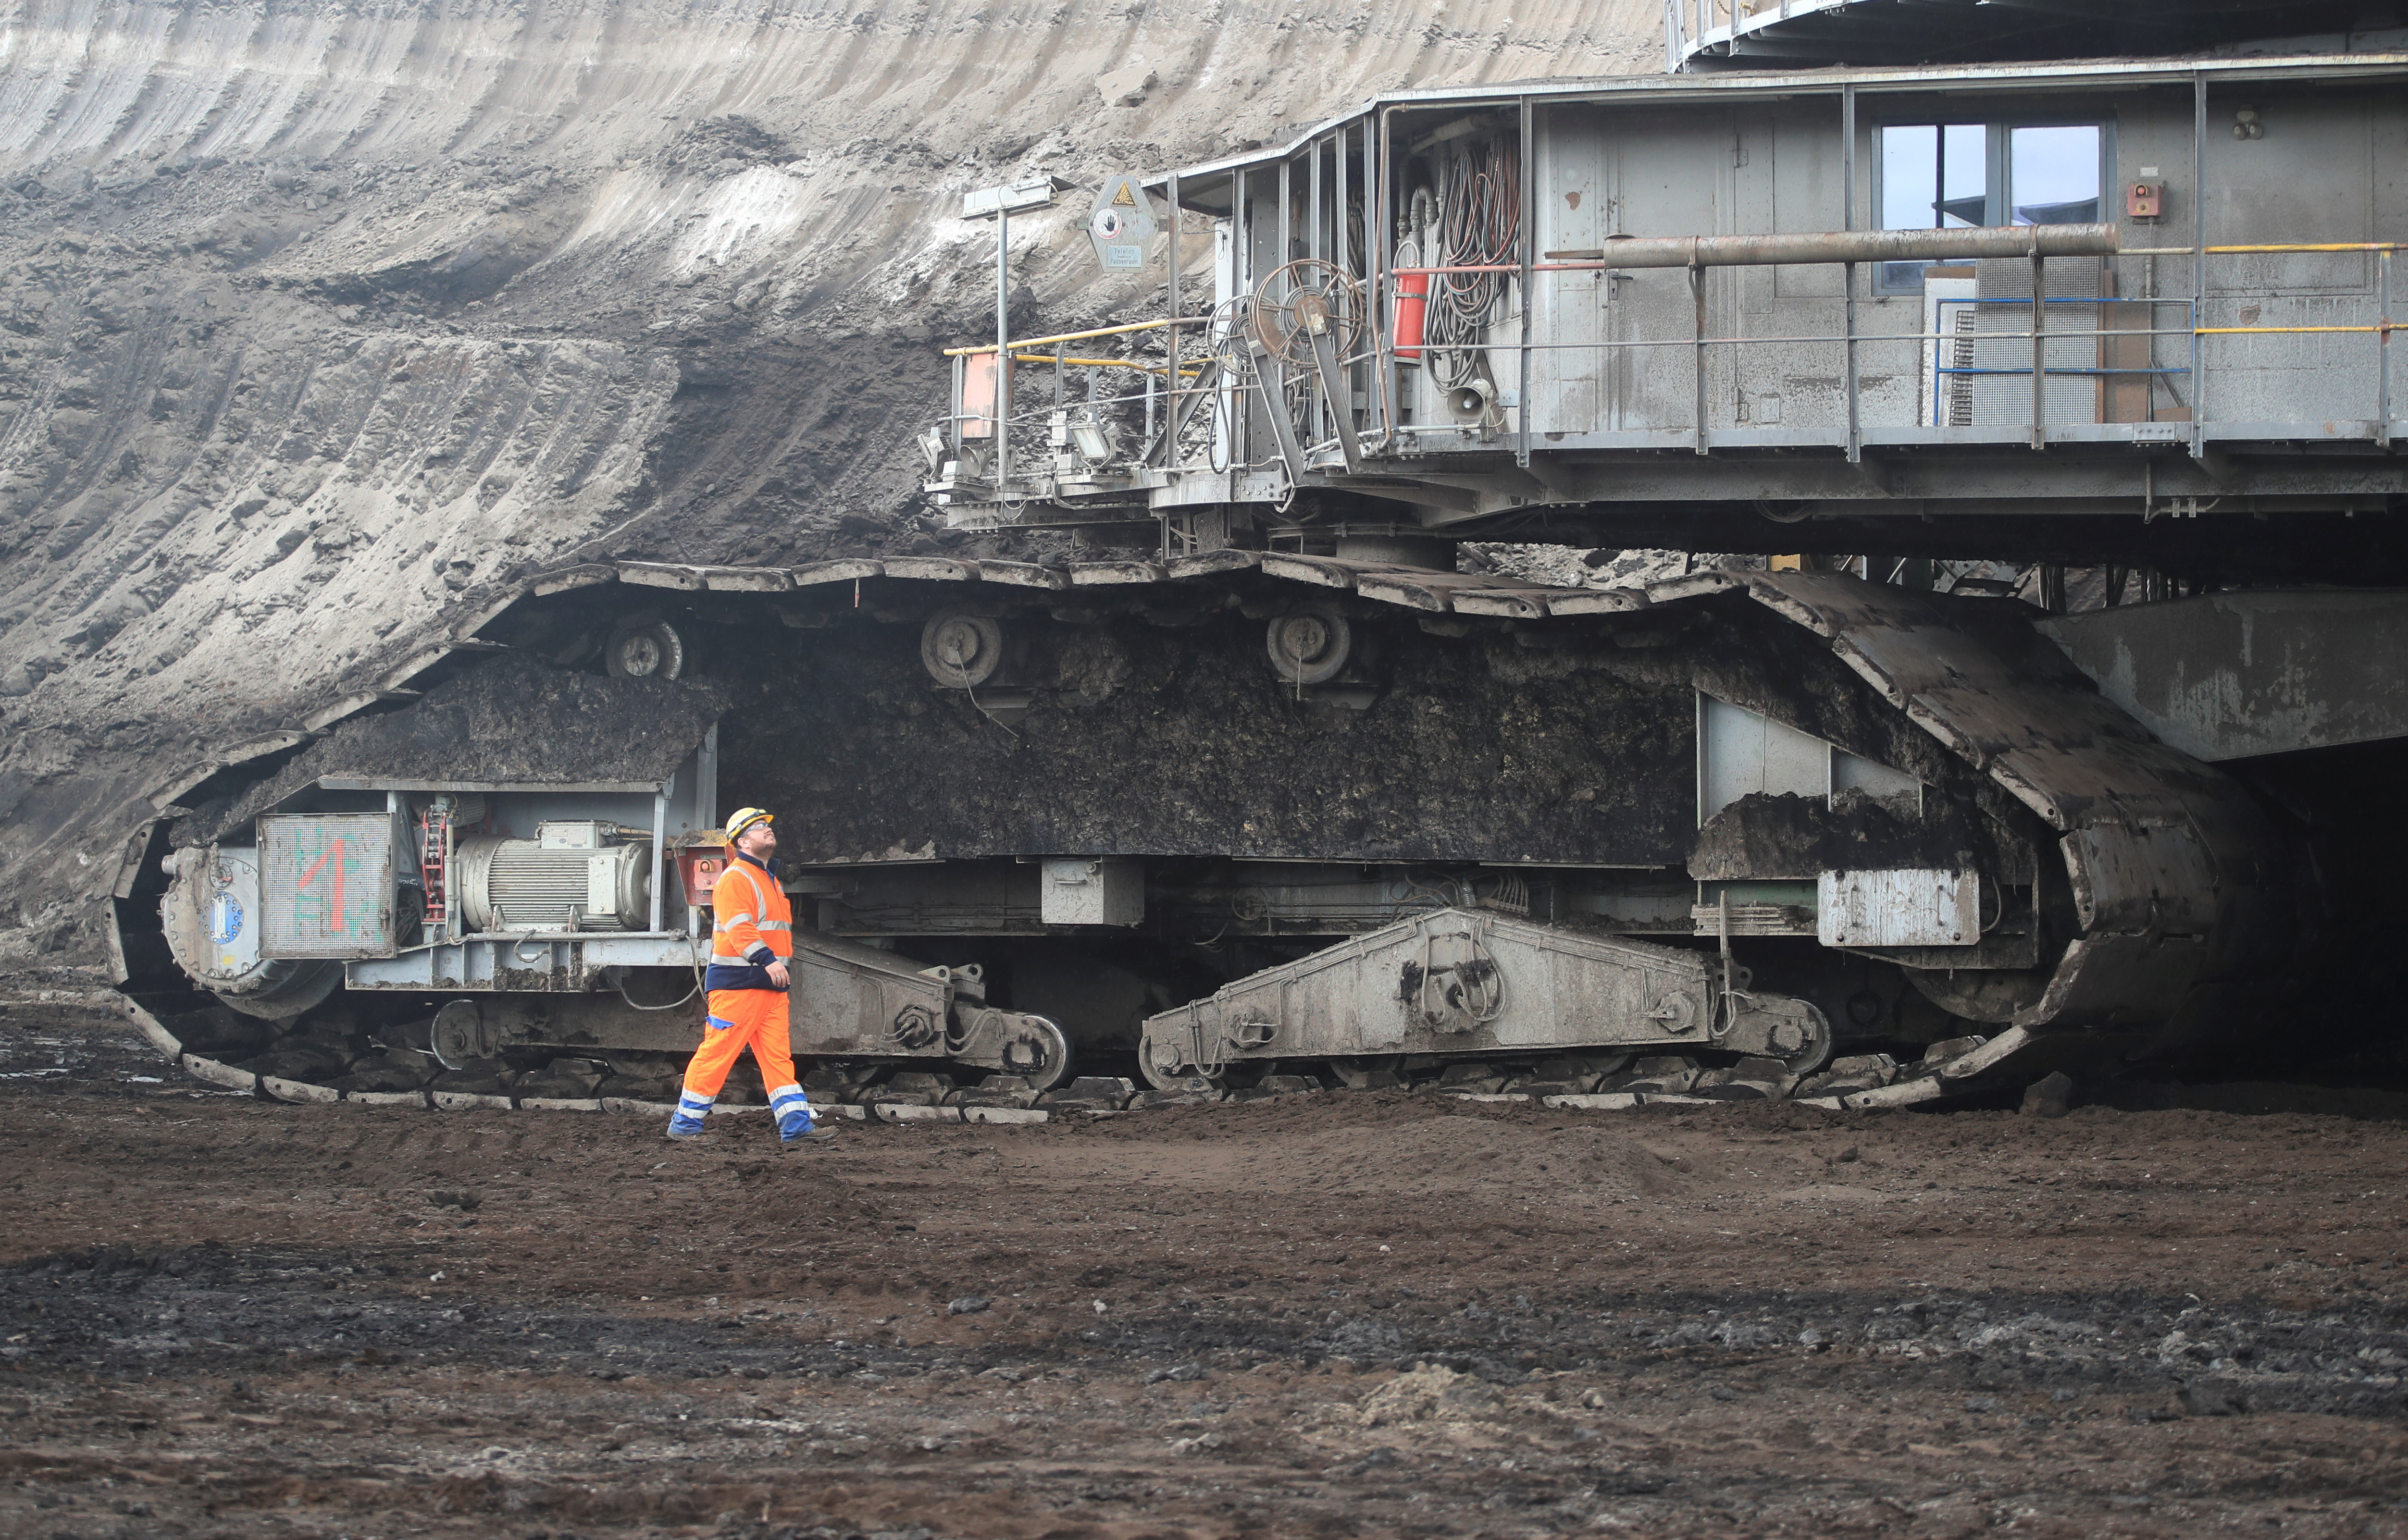 An operator of RWE's huge bucket wheel excavator walks in front of the chain wheels of the paddle-wheel digger in the open-cast brown coal mine of Inden near Weisweiler after an Internet auction ended to sell the 3,500 tons heavy excavator, in Inden, Germany September 30, 2020.